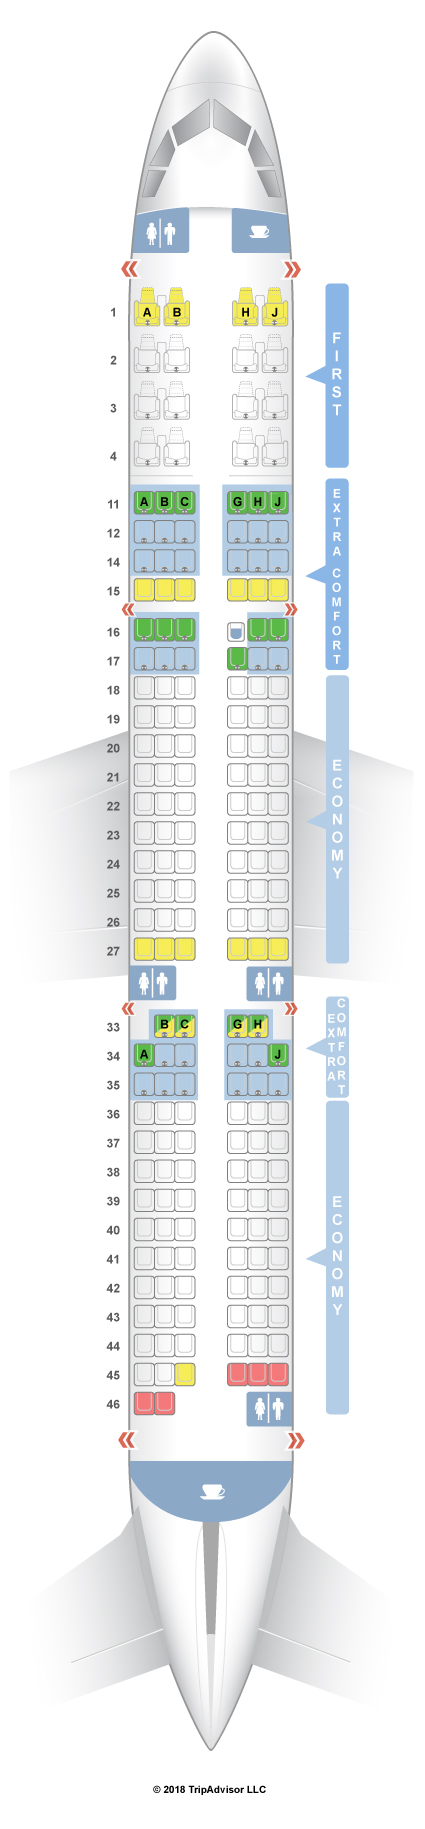 Seatguru seat map hawaiian airlines airbus a321neo 321